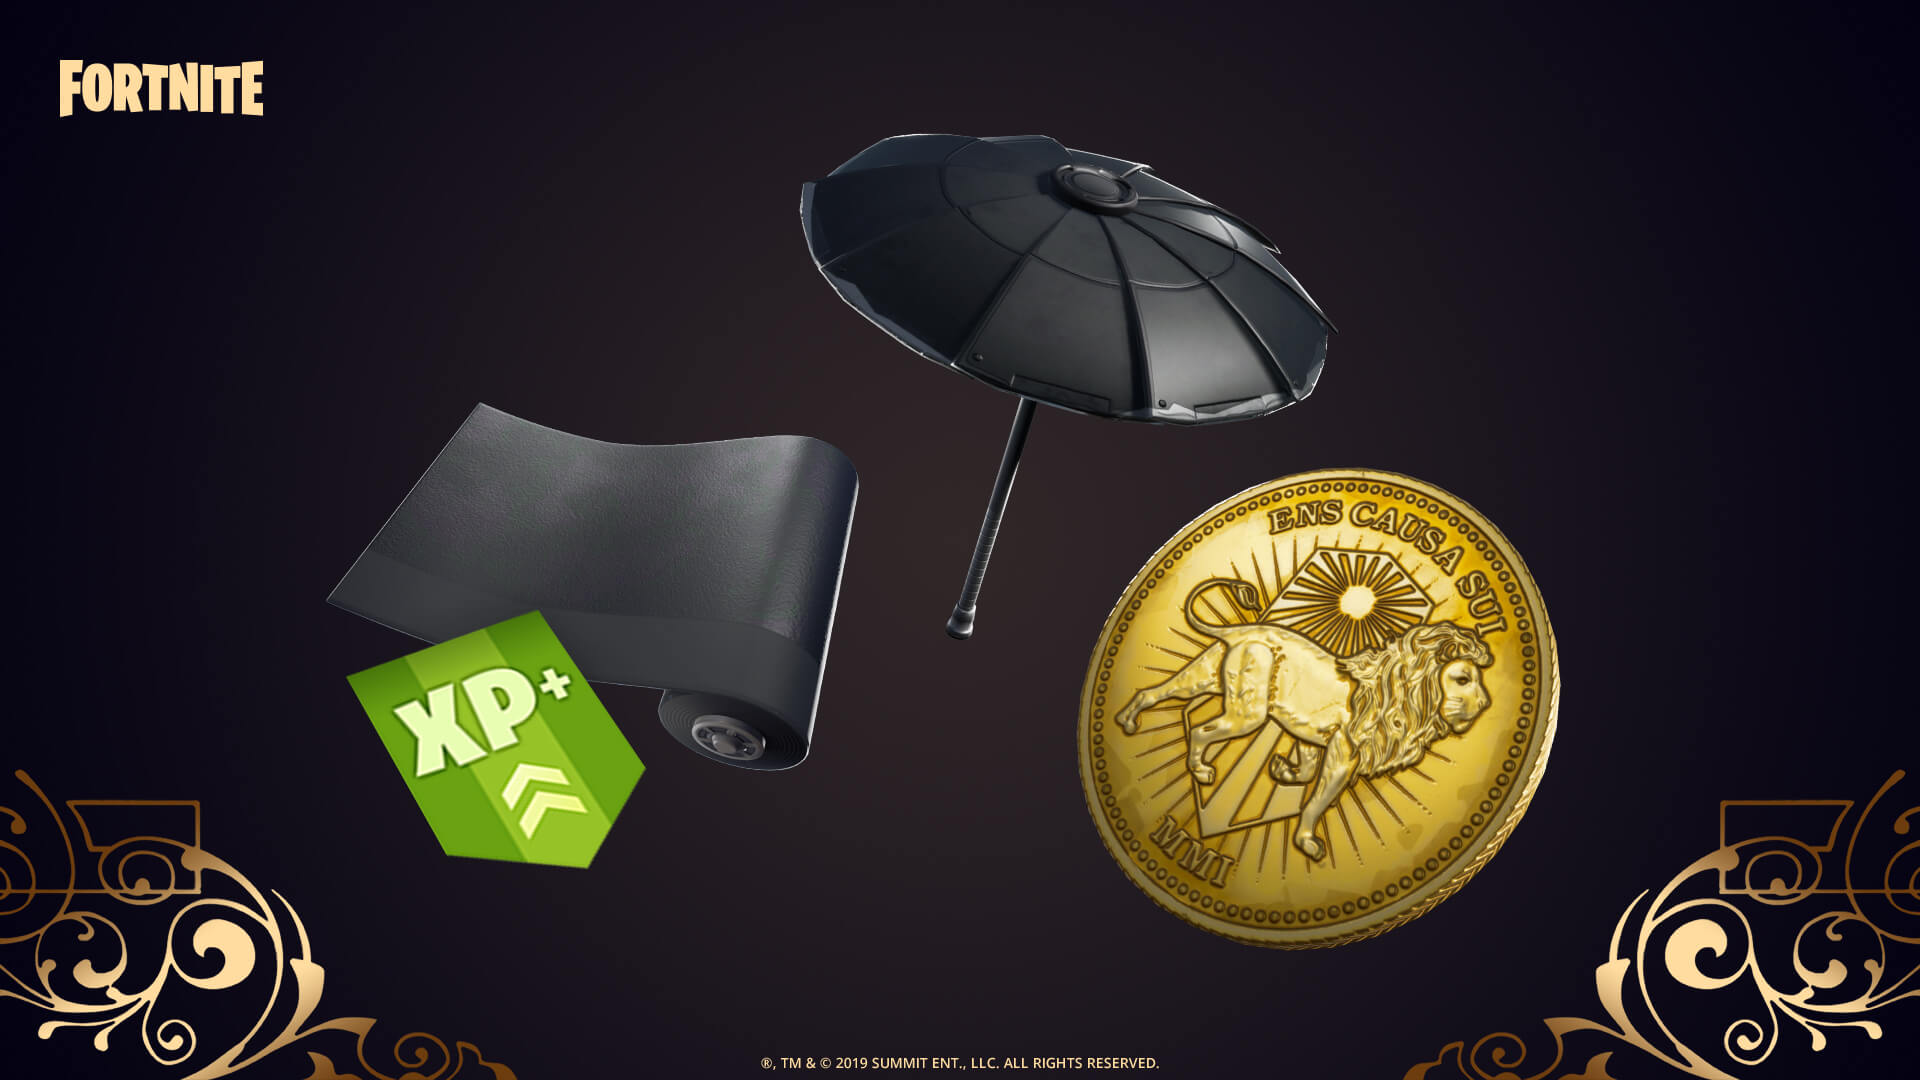 Fortnite x John Wick Collaboration - Wick's Bounty LTM Rewards